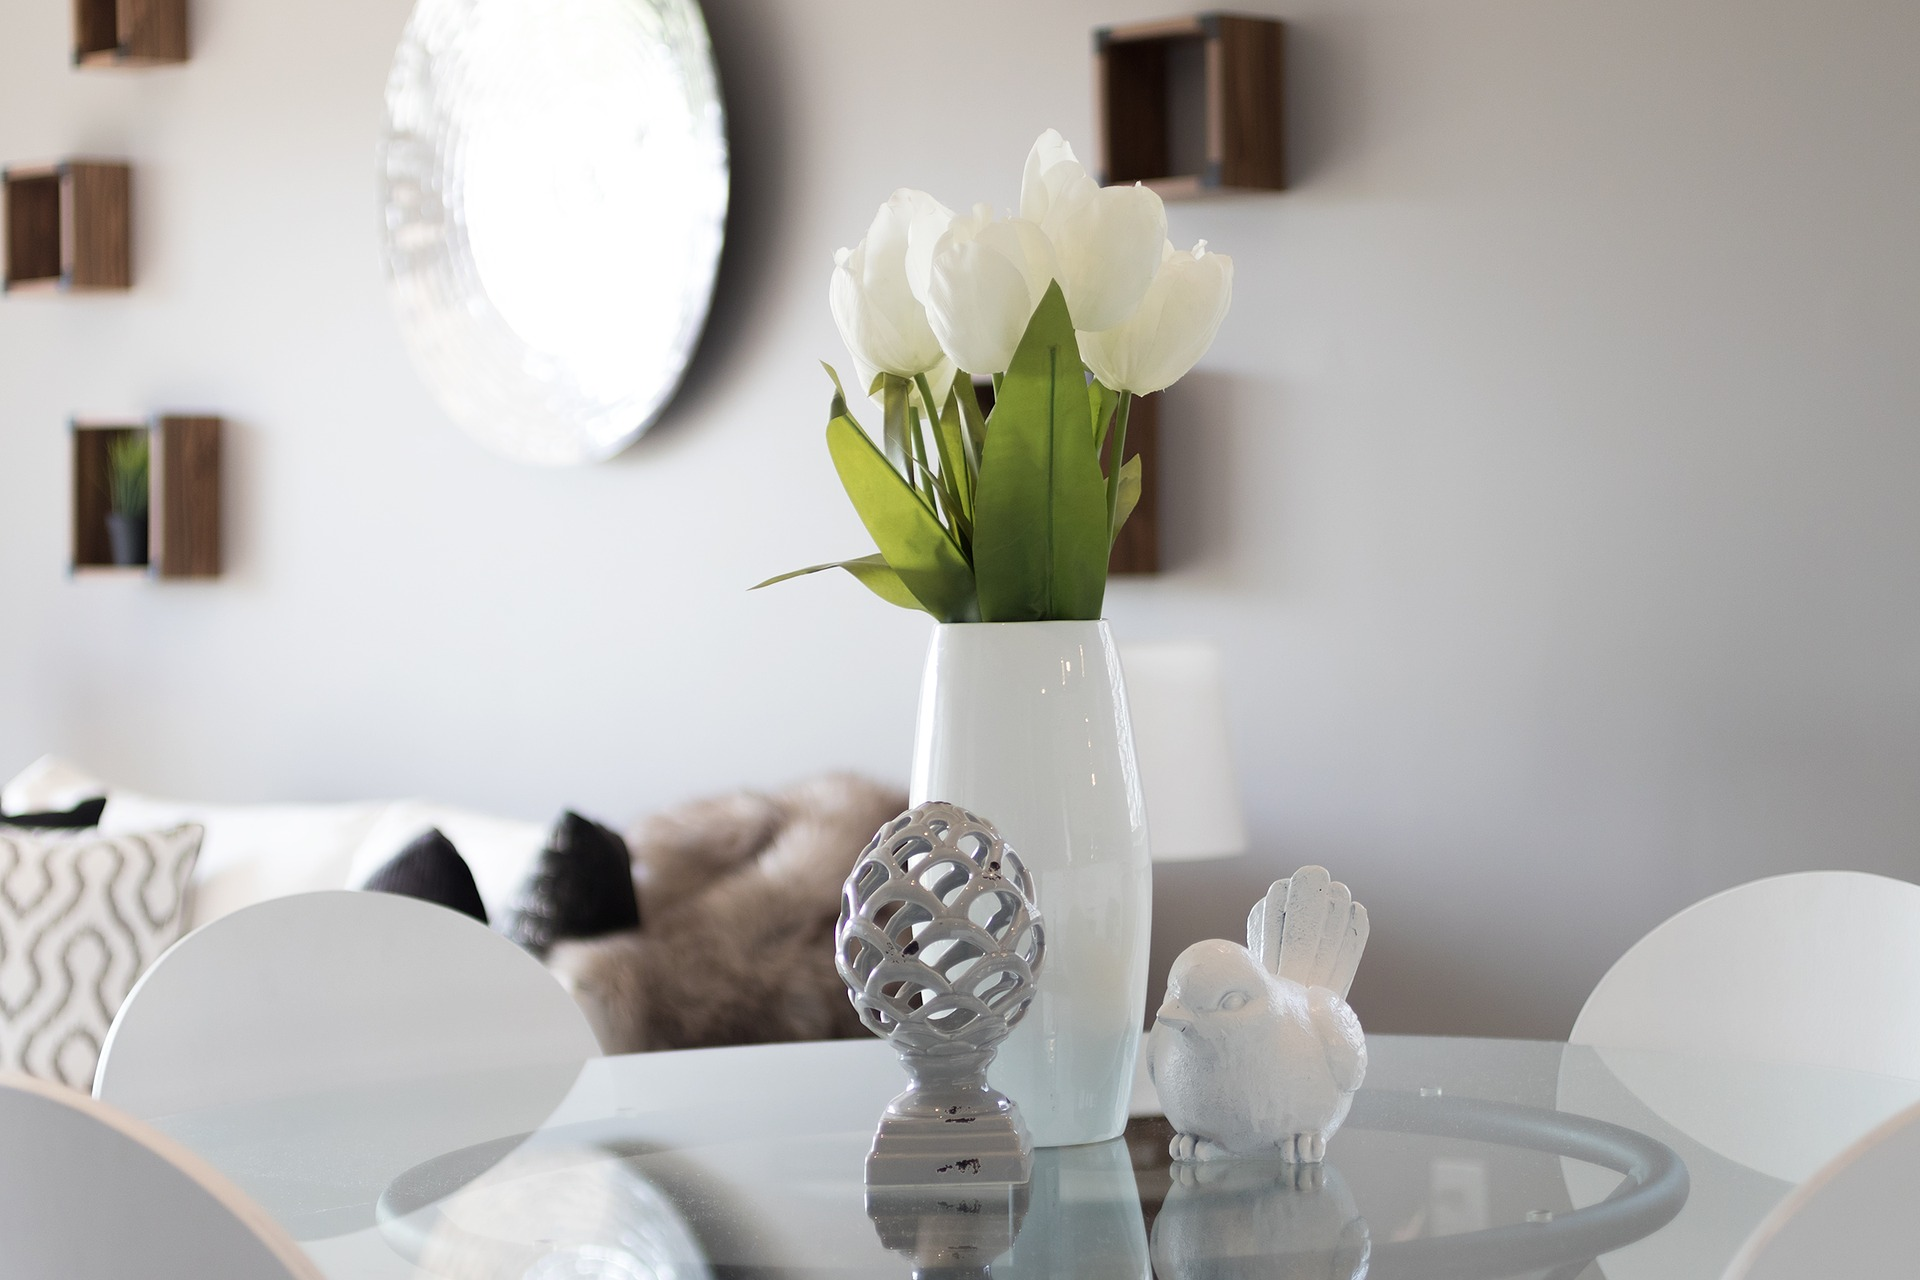 Home Stagging 9 Home Staging Tips To Ensure A Quick Sale